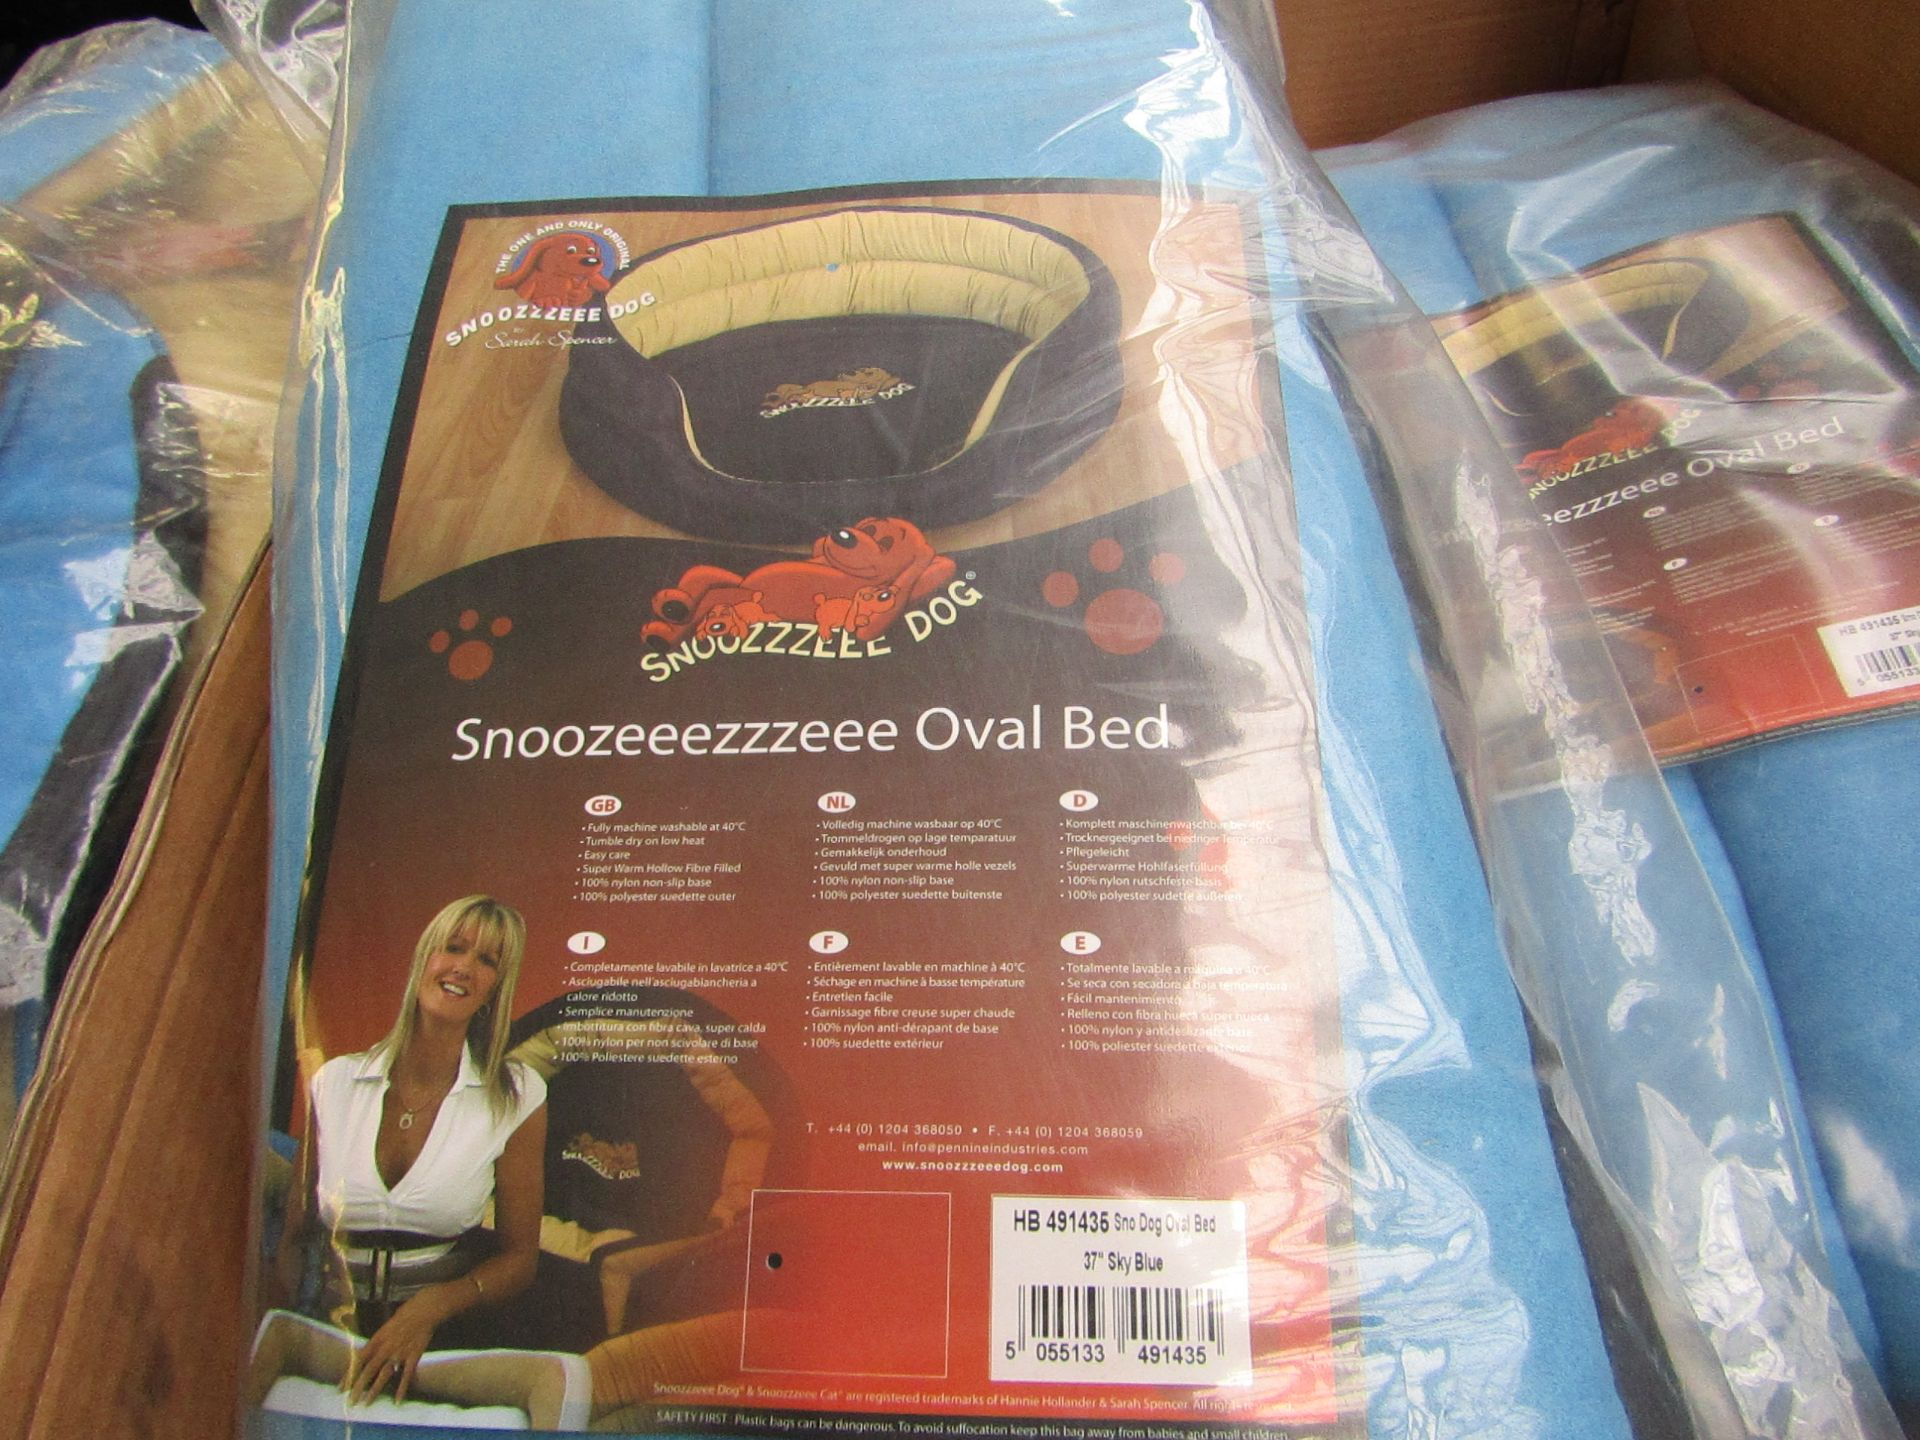 """5x Snoozzzeee Dog - Oval Sky Blue Dog Bed (37"""") - All New & Packaged."""